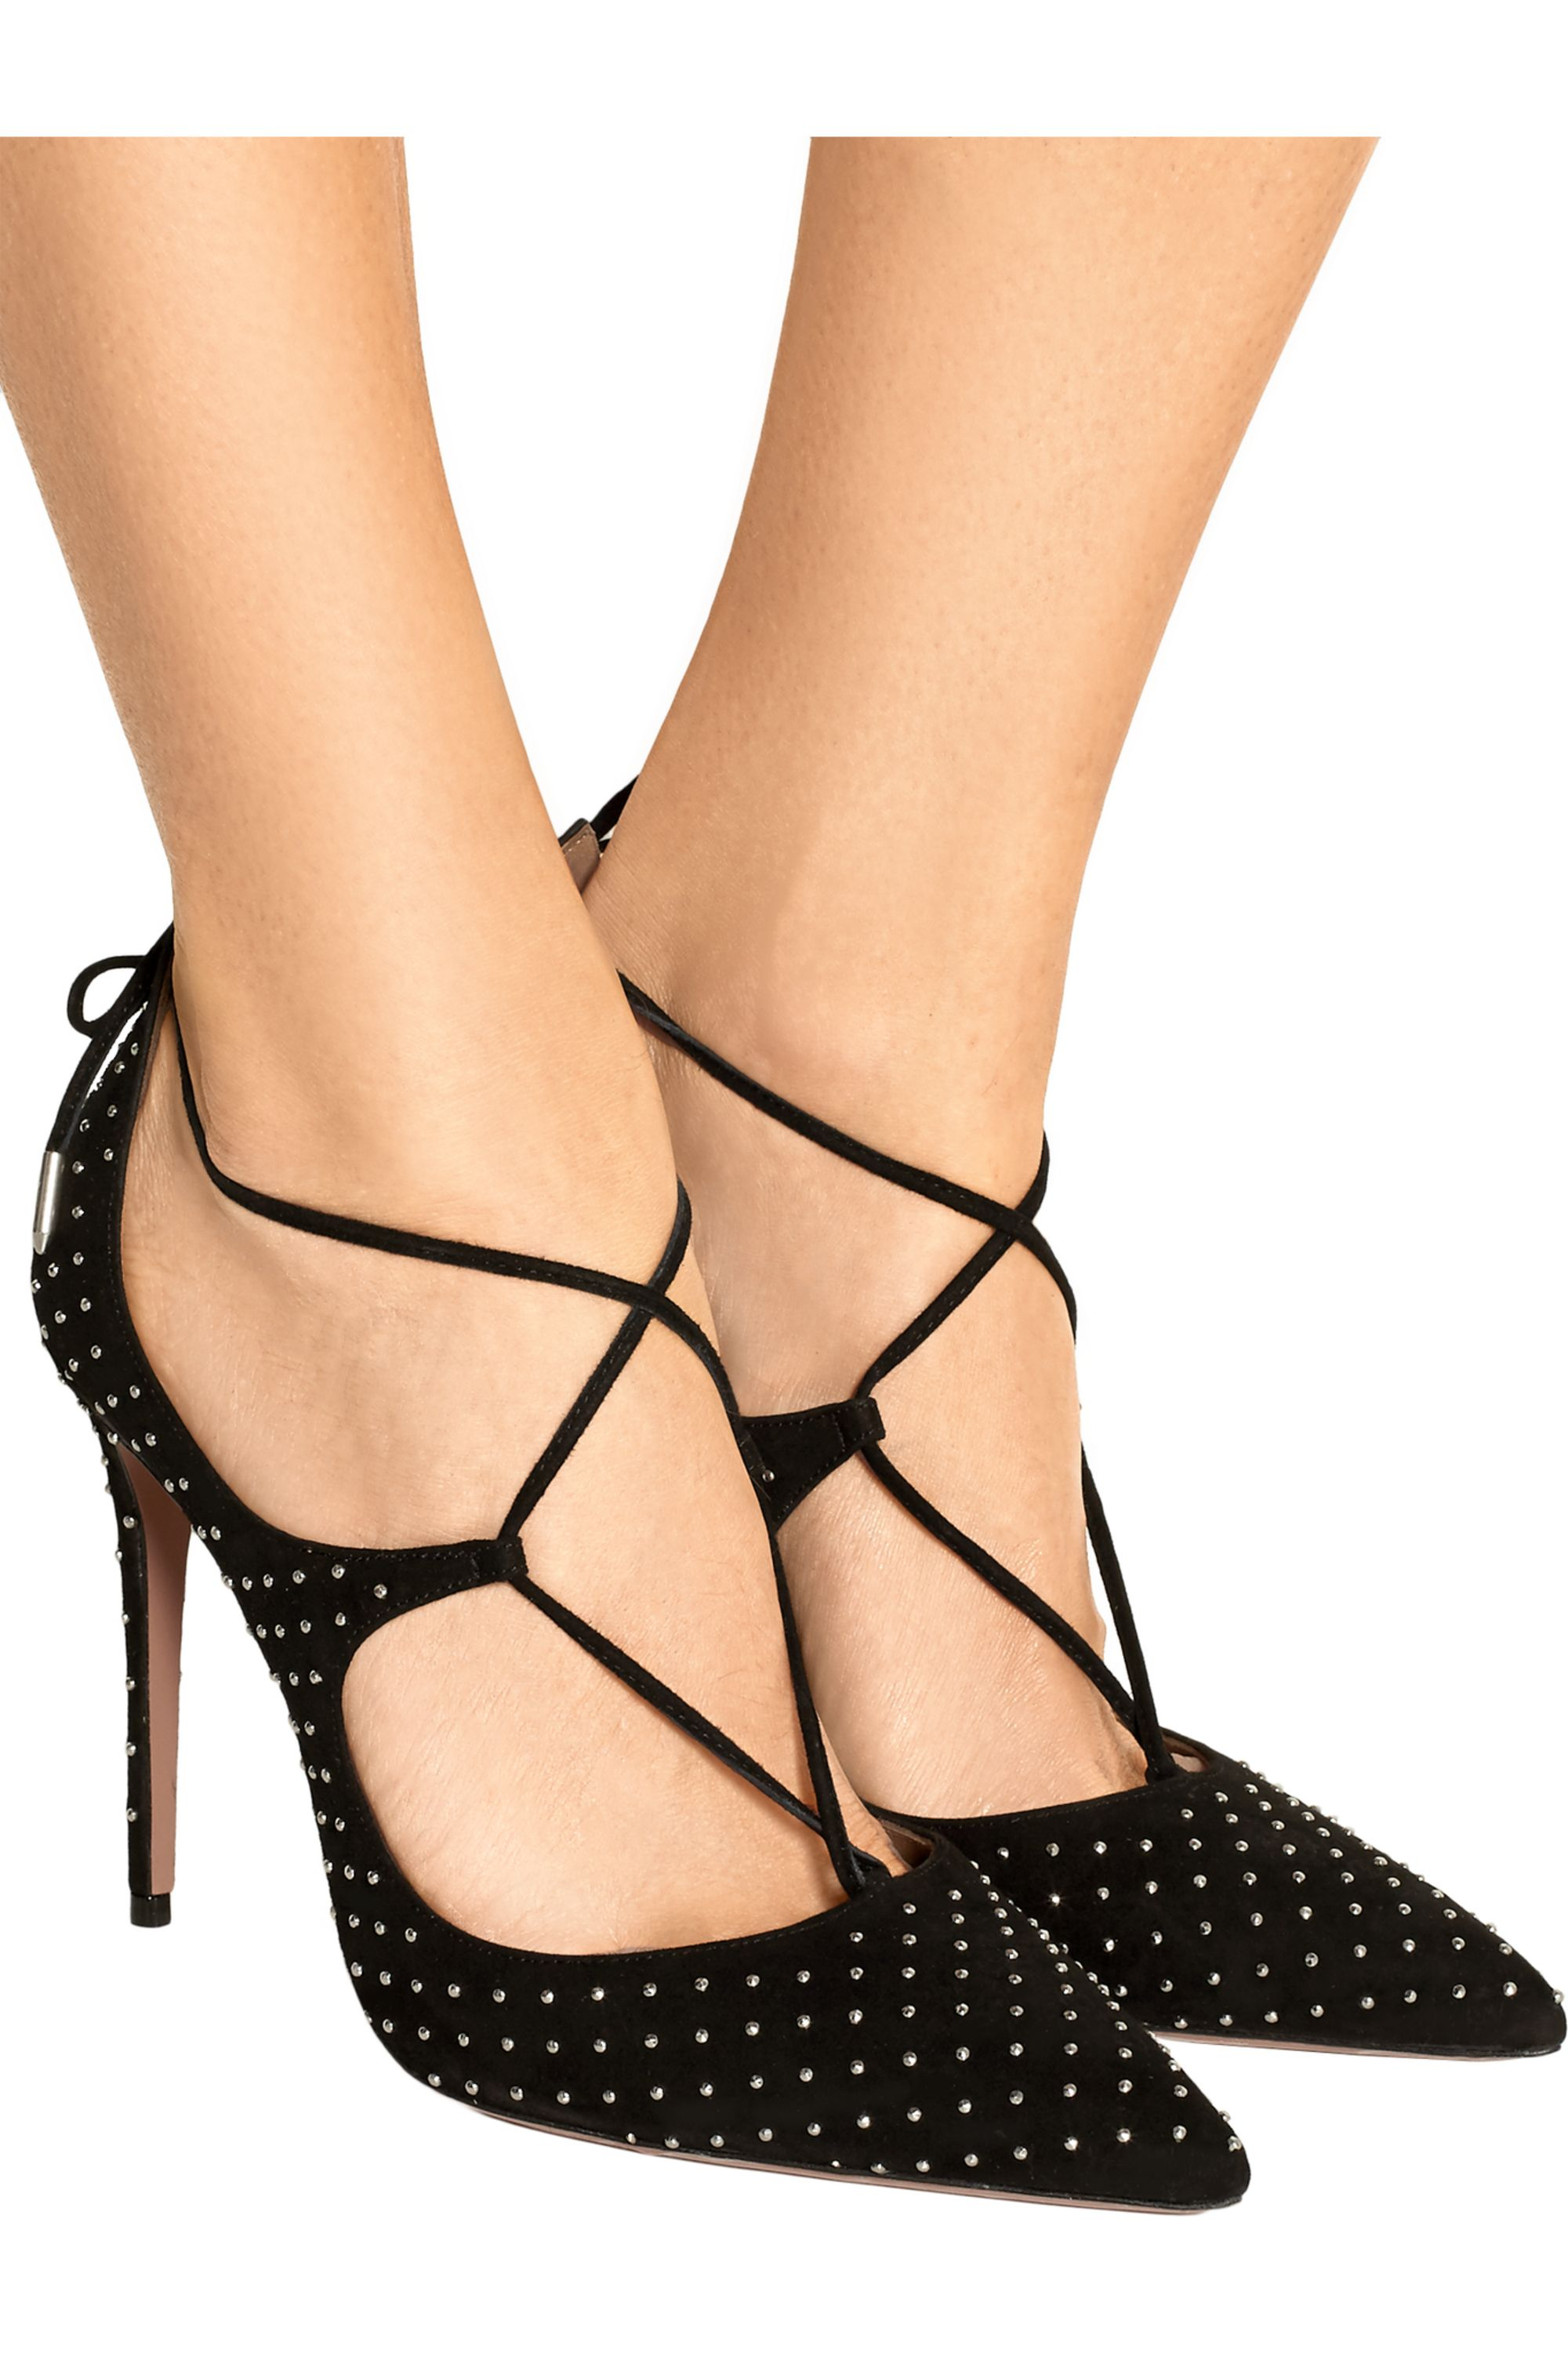 Aquazzura Christy studded suede pumps